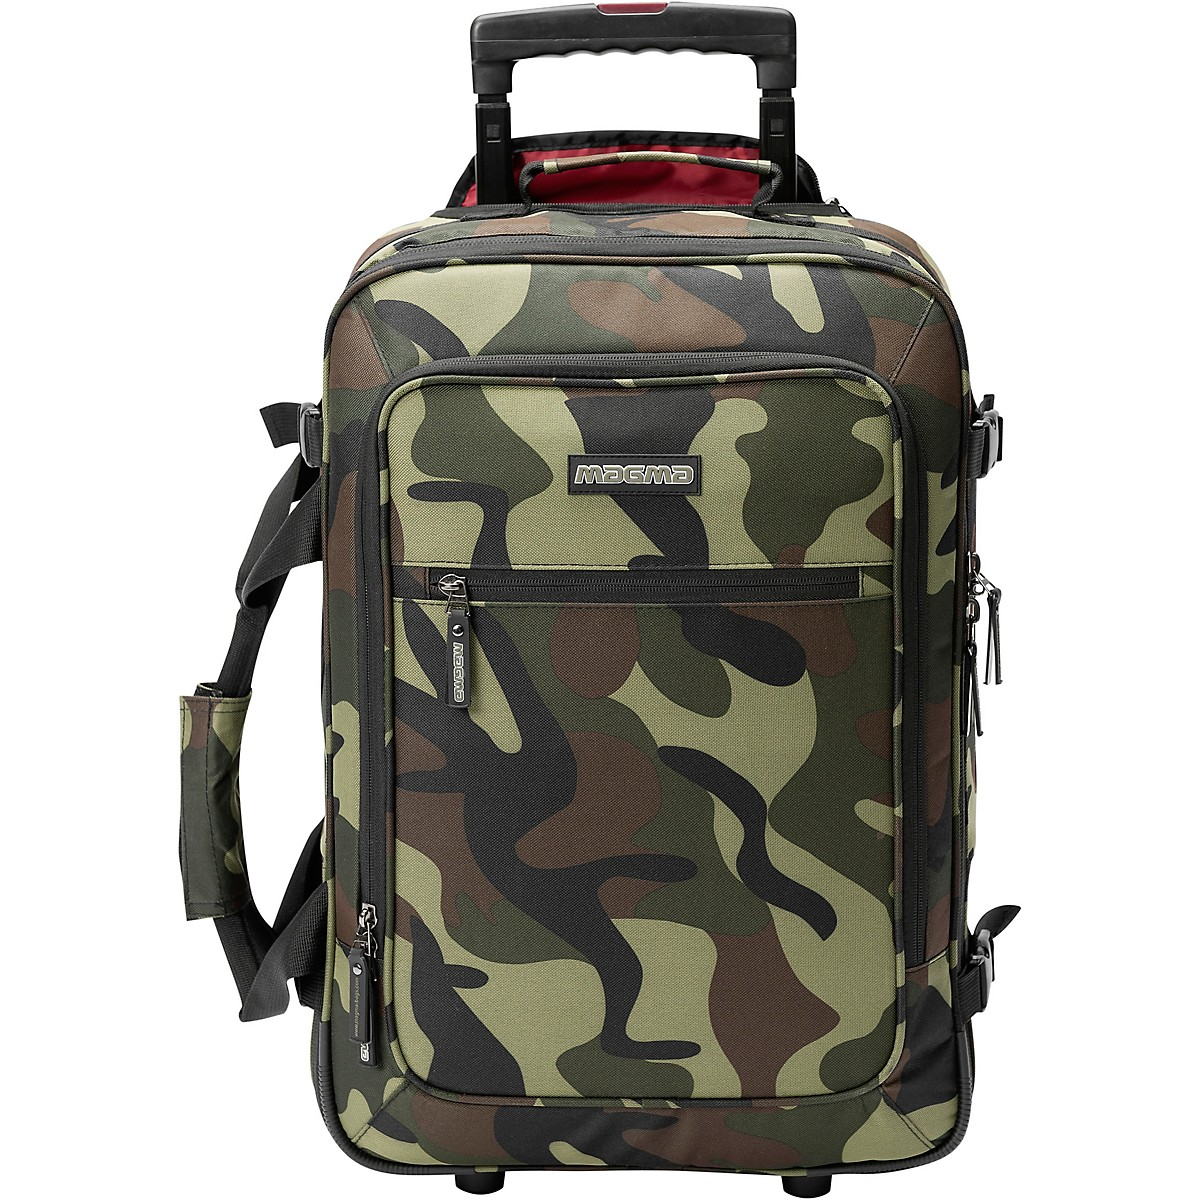 Magma Cases DIGI Carry-On Trolley Rolling DJ Case